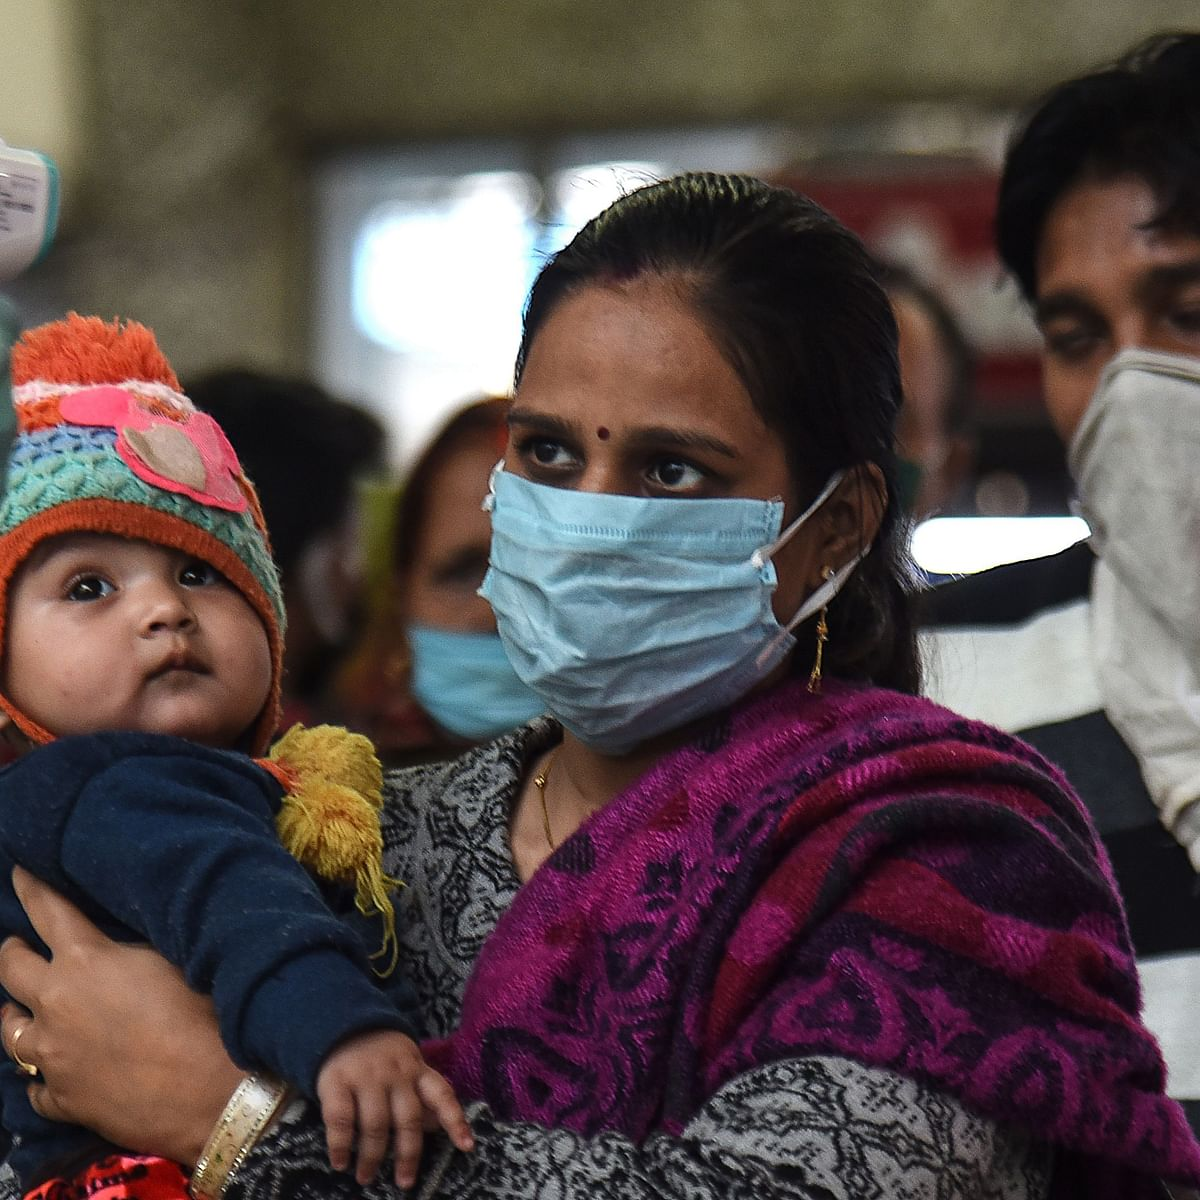 India records 39,742 fresh COVID-19 cases, 535 fatalities in a day